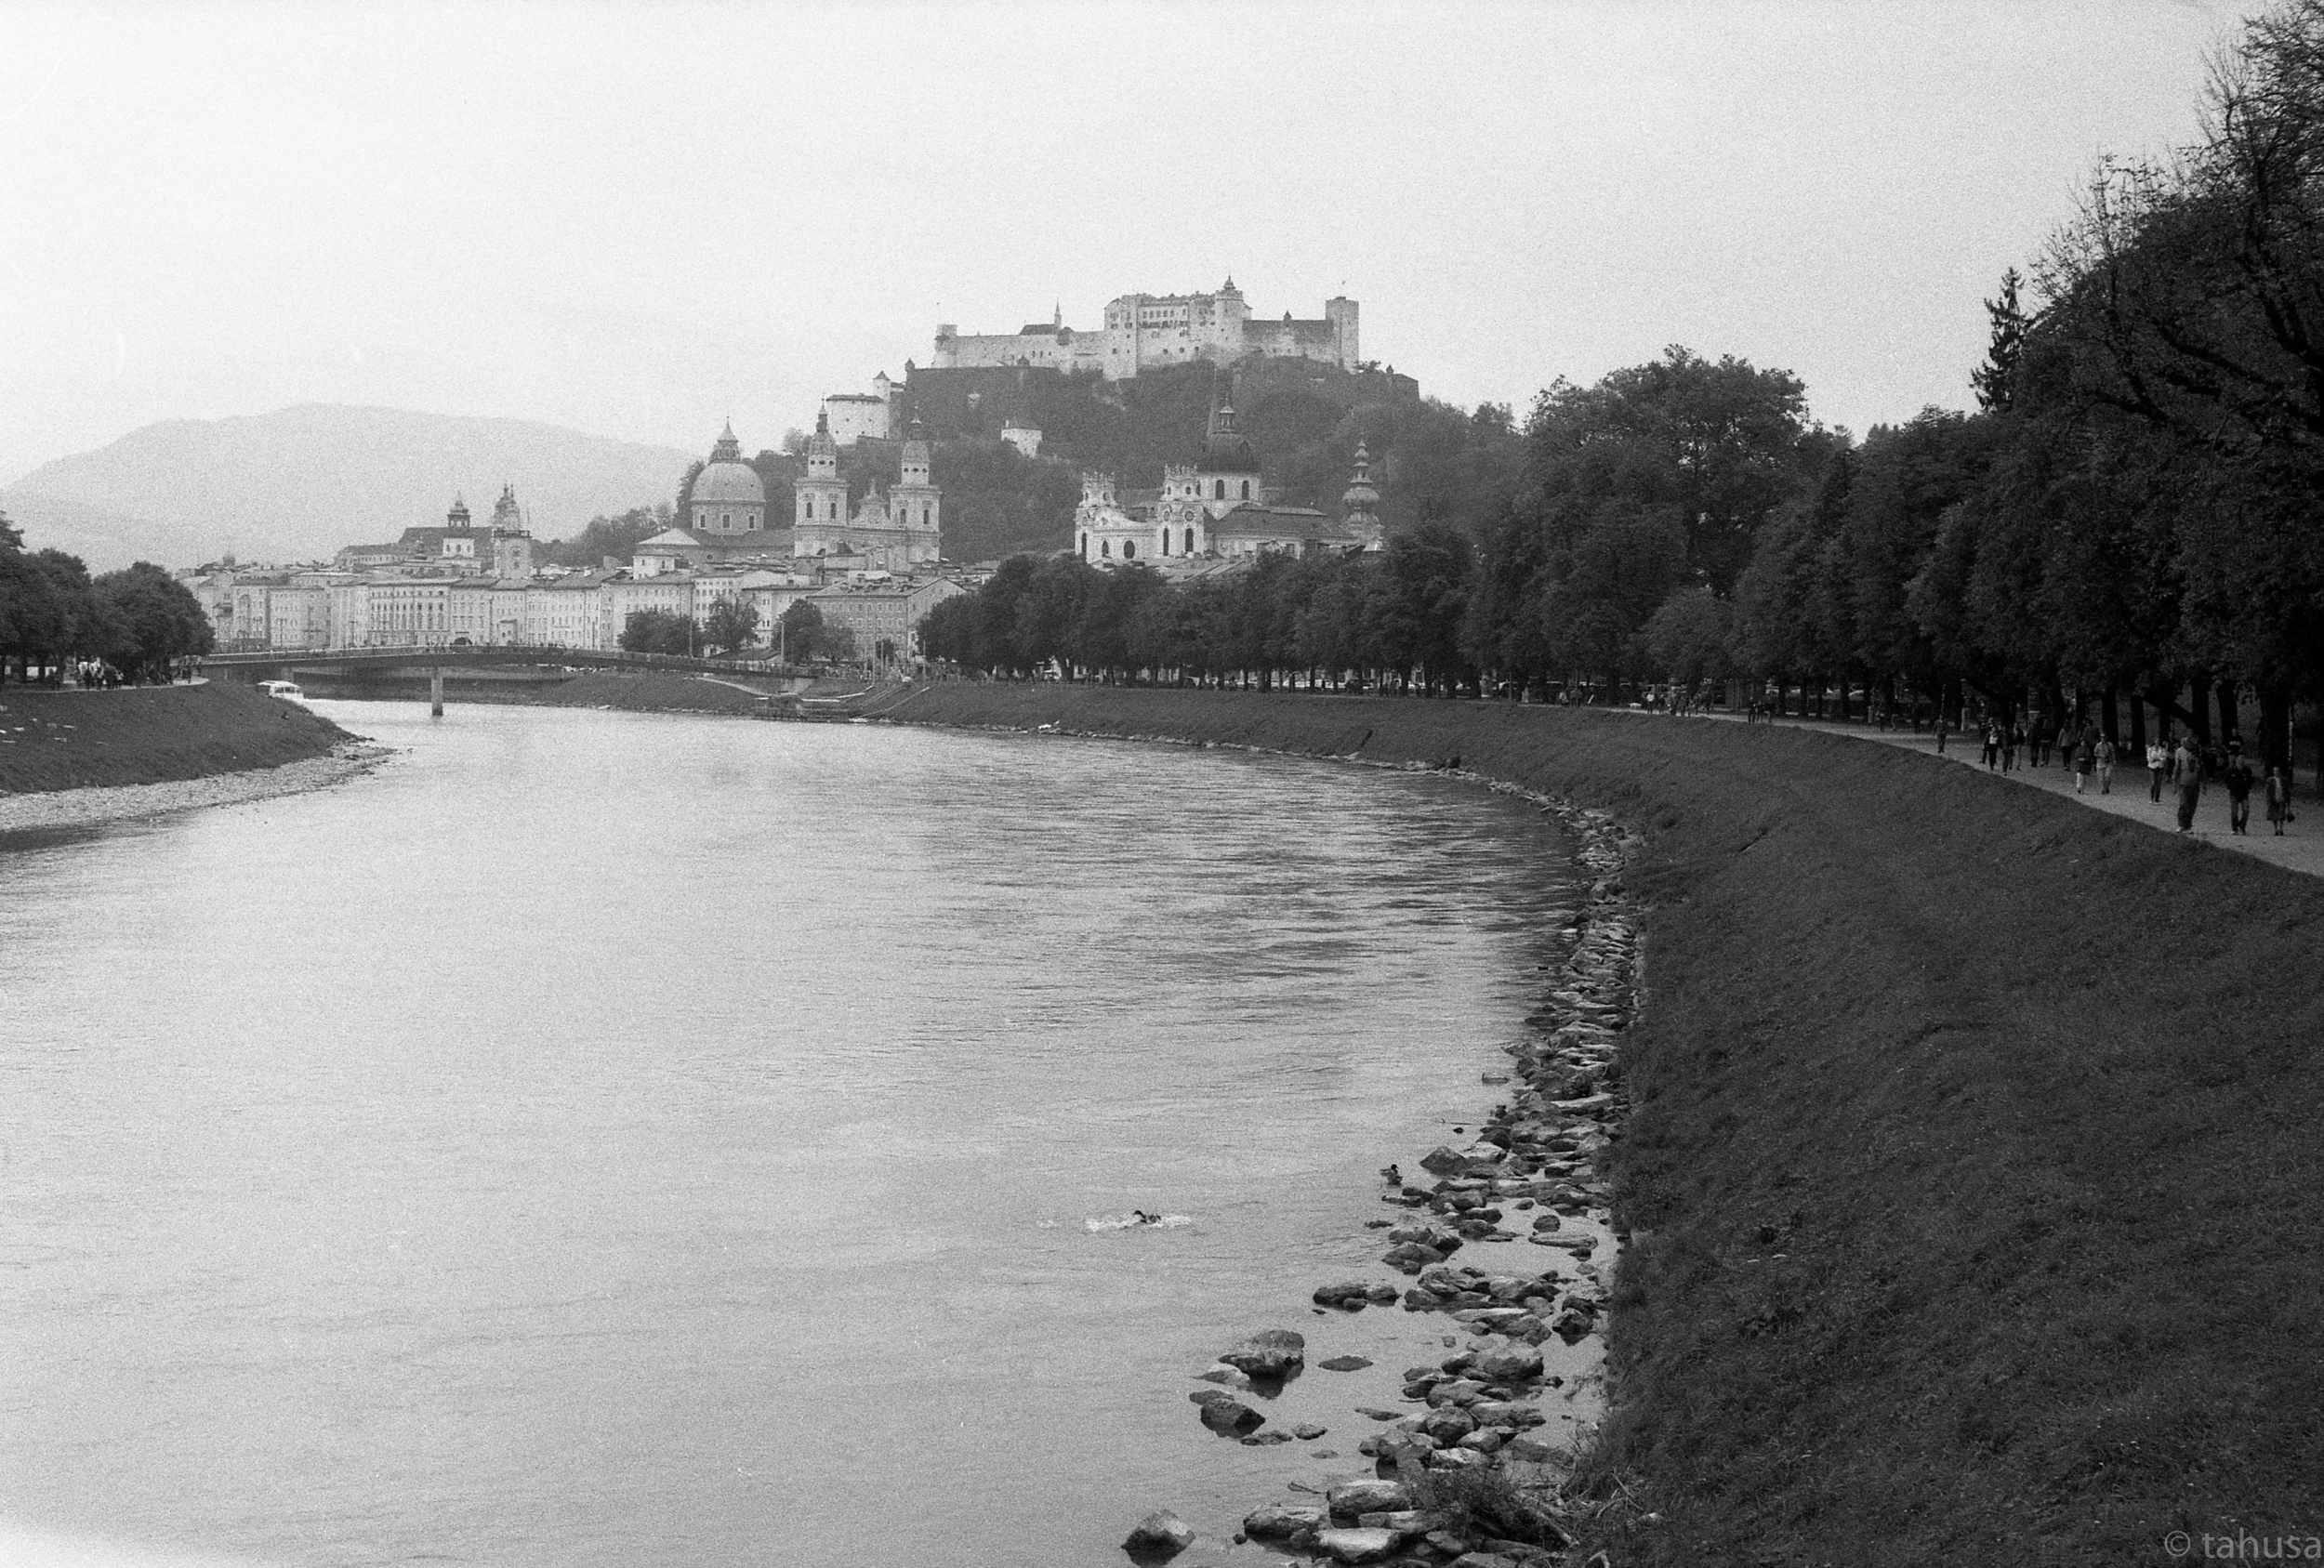 Visiting-Salzburg-Austria-travel-visit-Black-and-white-analog-film-leica-summicron-35mm-f2-35-v1-Kentmere-400-iso400-film-review